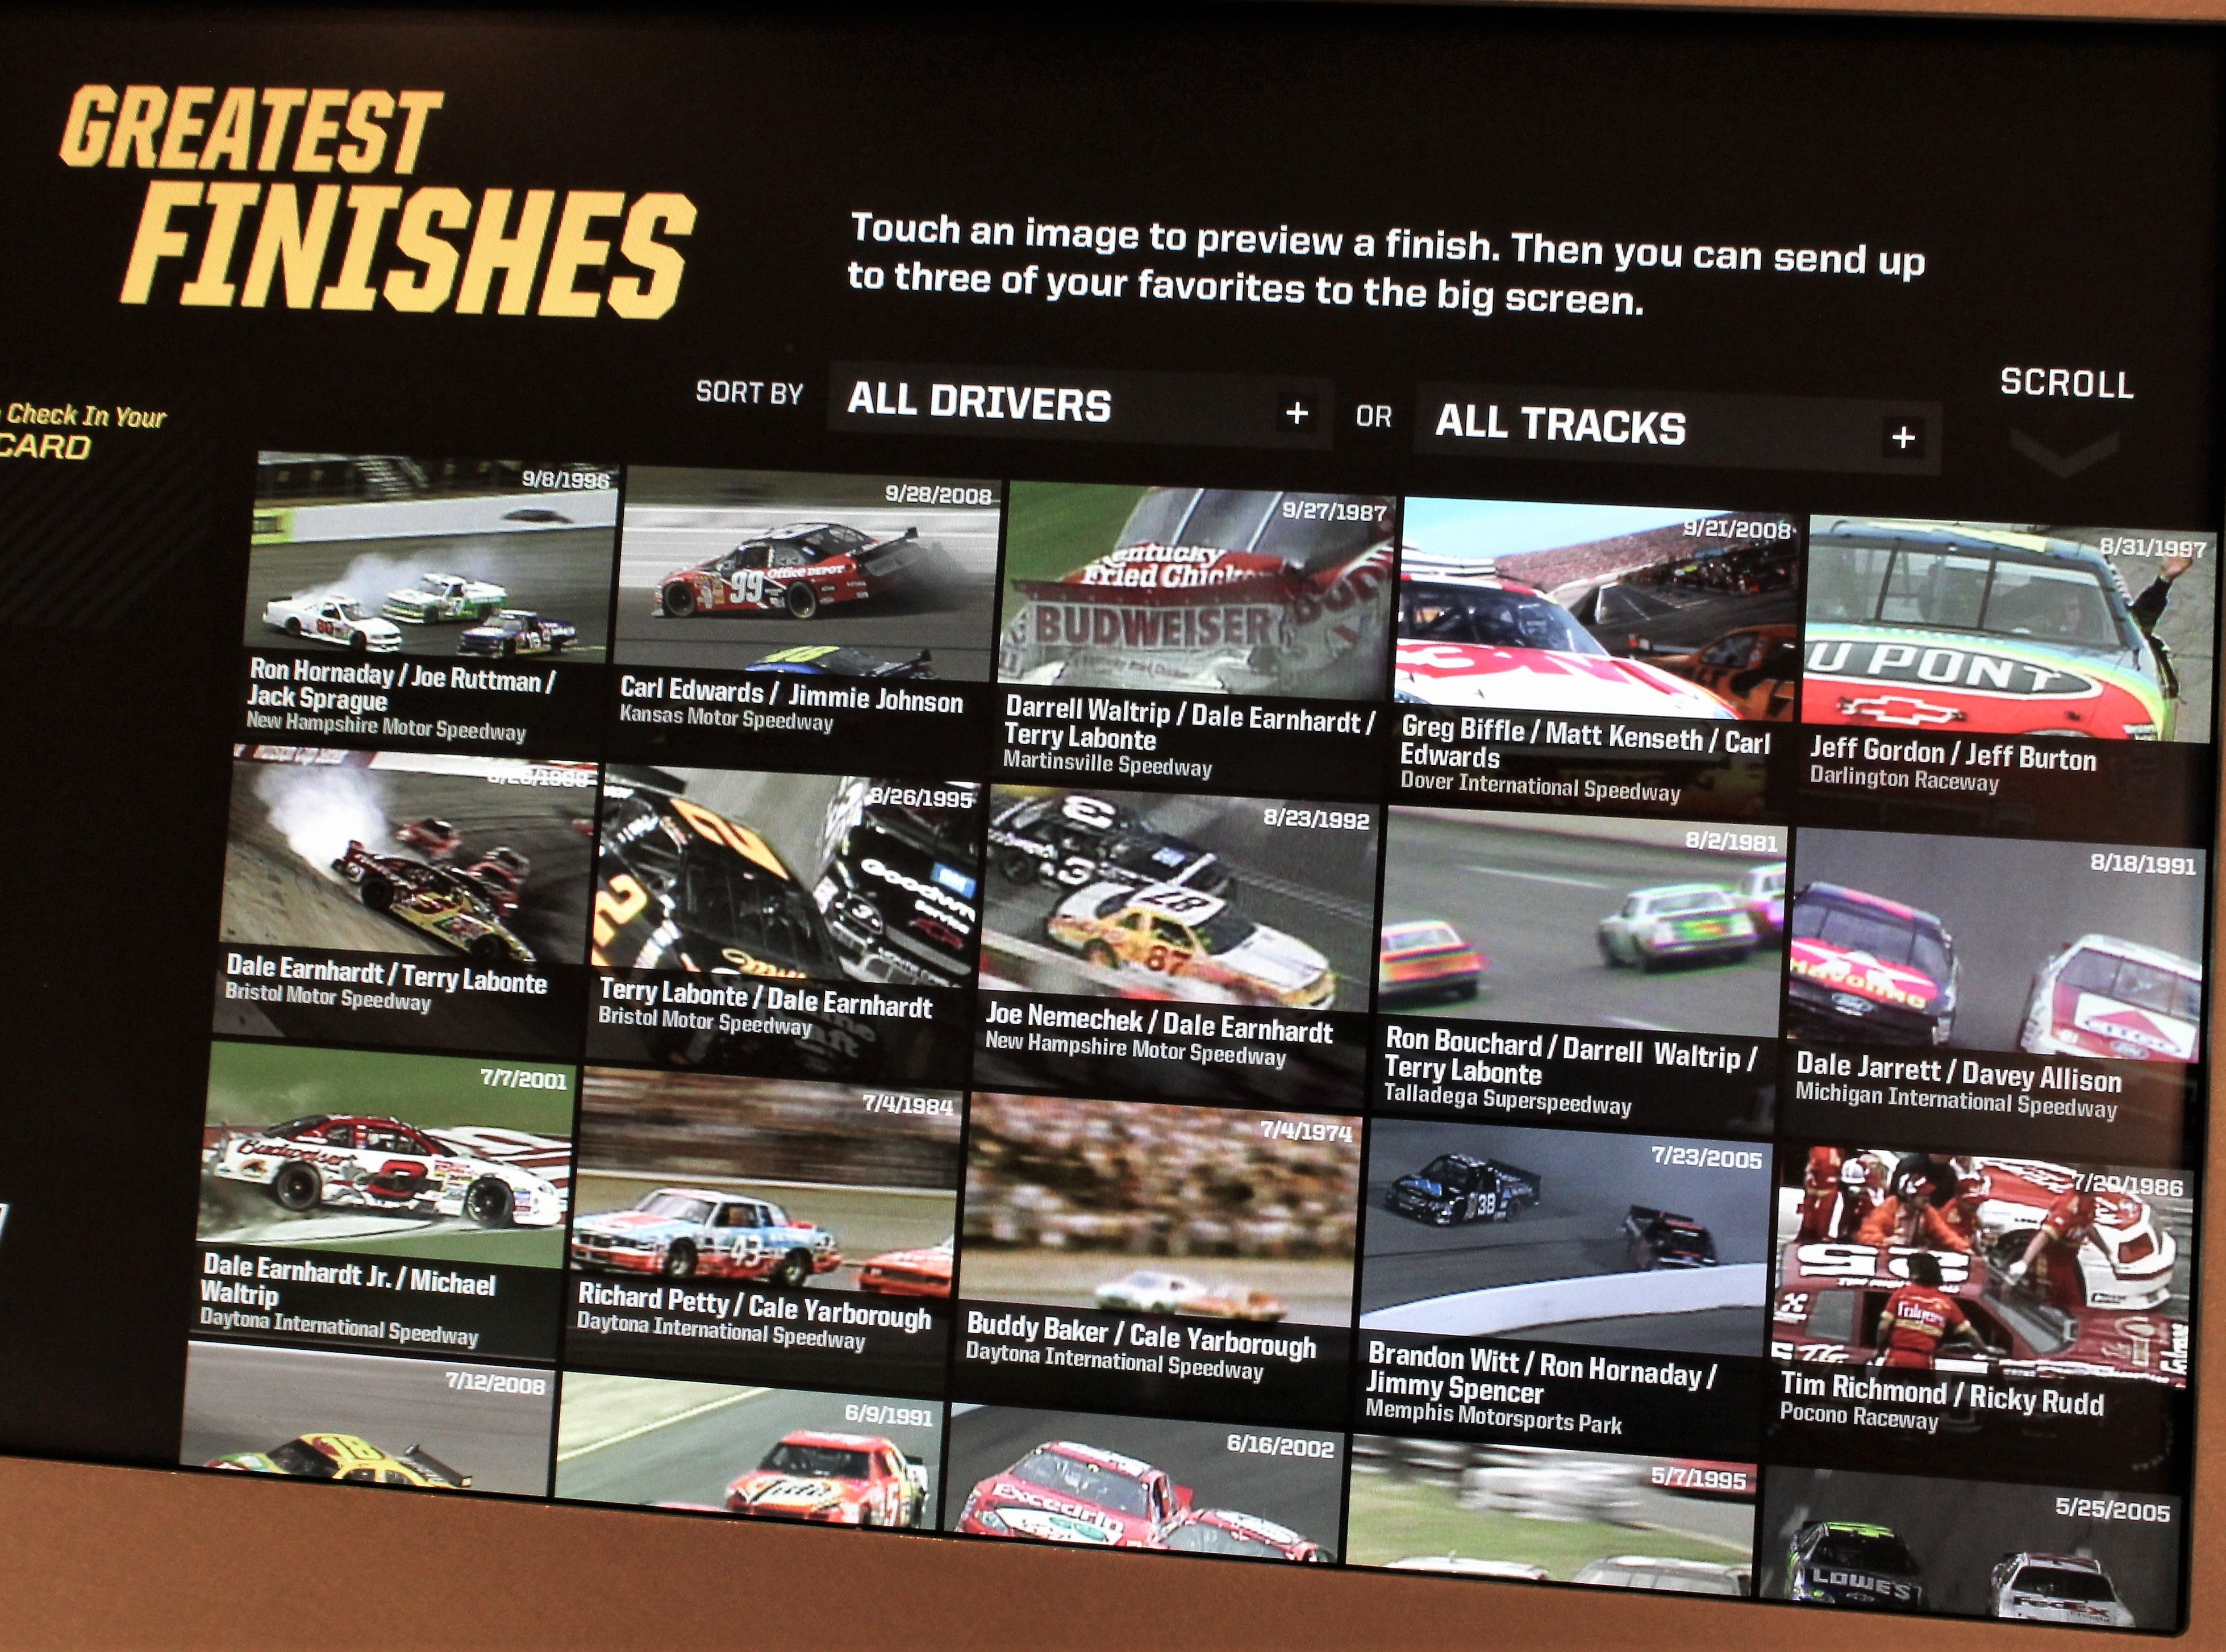 Technology is a big part of NASCAR today, and visitors to its Hall of Fame in Charlotte, N.C., can tap a screen to watch the greatest race finishes in the sport.